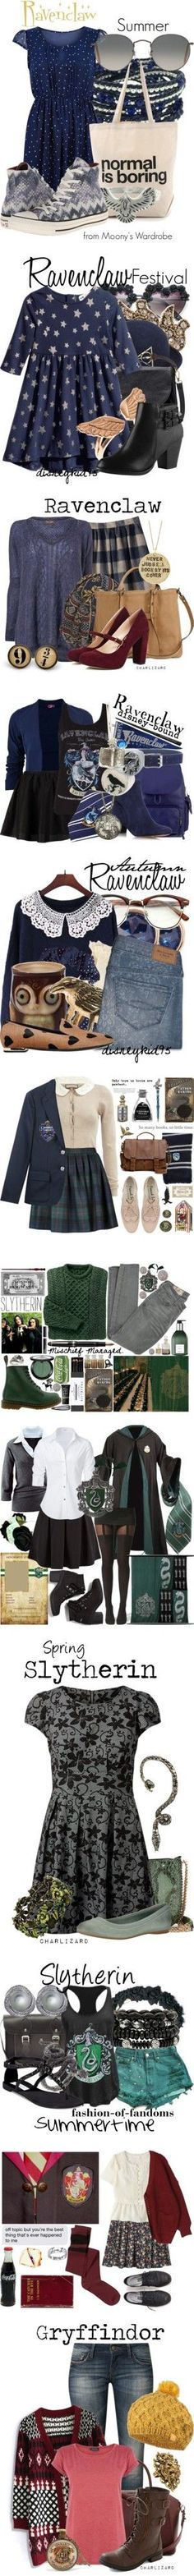 Harry Potter by starrydancer on Polyvore featuring Tenki, Dogeared, Carolina Glamour Collection, Converse, Ray-Ban, Summer, harrypotter, hogwarts, ravenclaw and Warehouse - COSPLAY IS BAEEE!!! Tap the pin now to grab yourself some BAE Cosplay leggings and shirts! From super hero fitness leggings, super hero fitness shirts, and so much more that wil make you say YASSS!!!